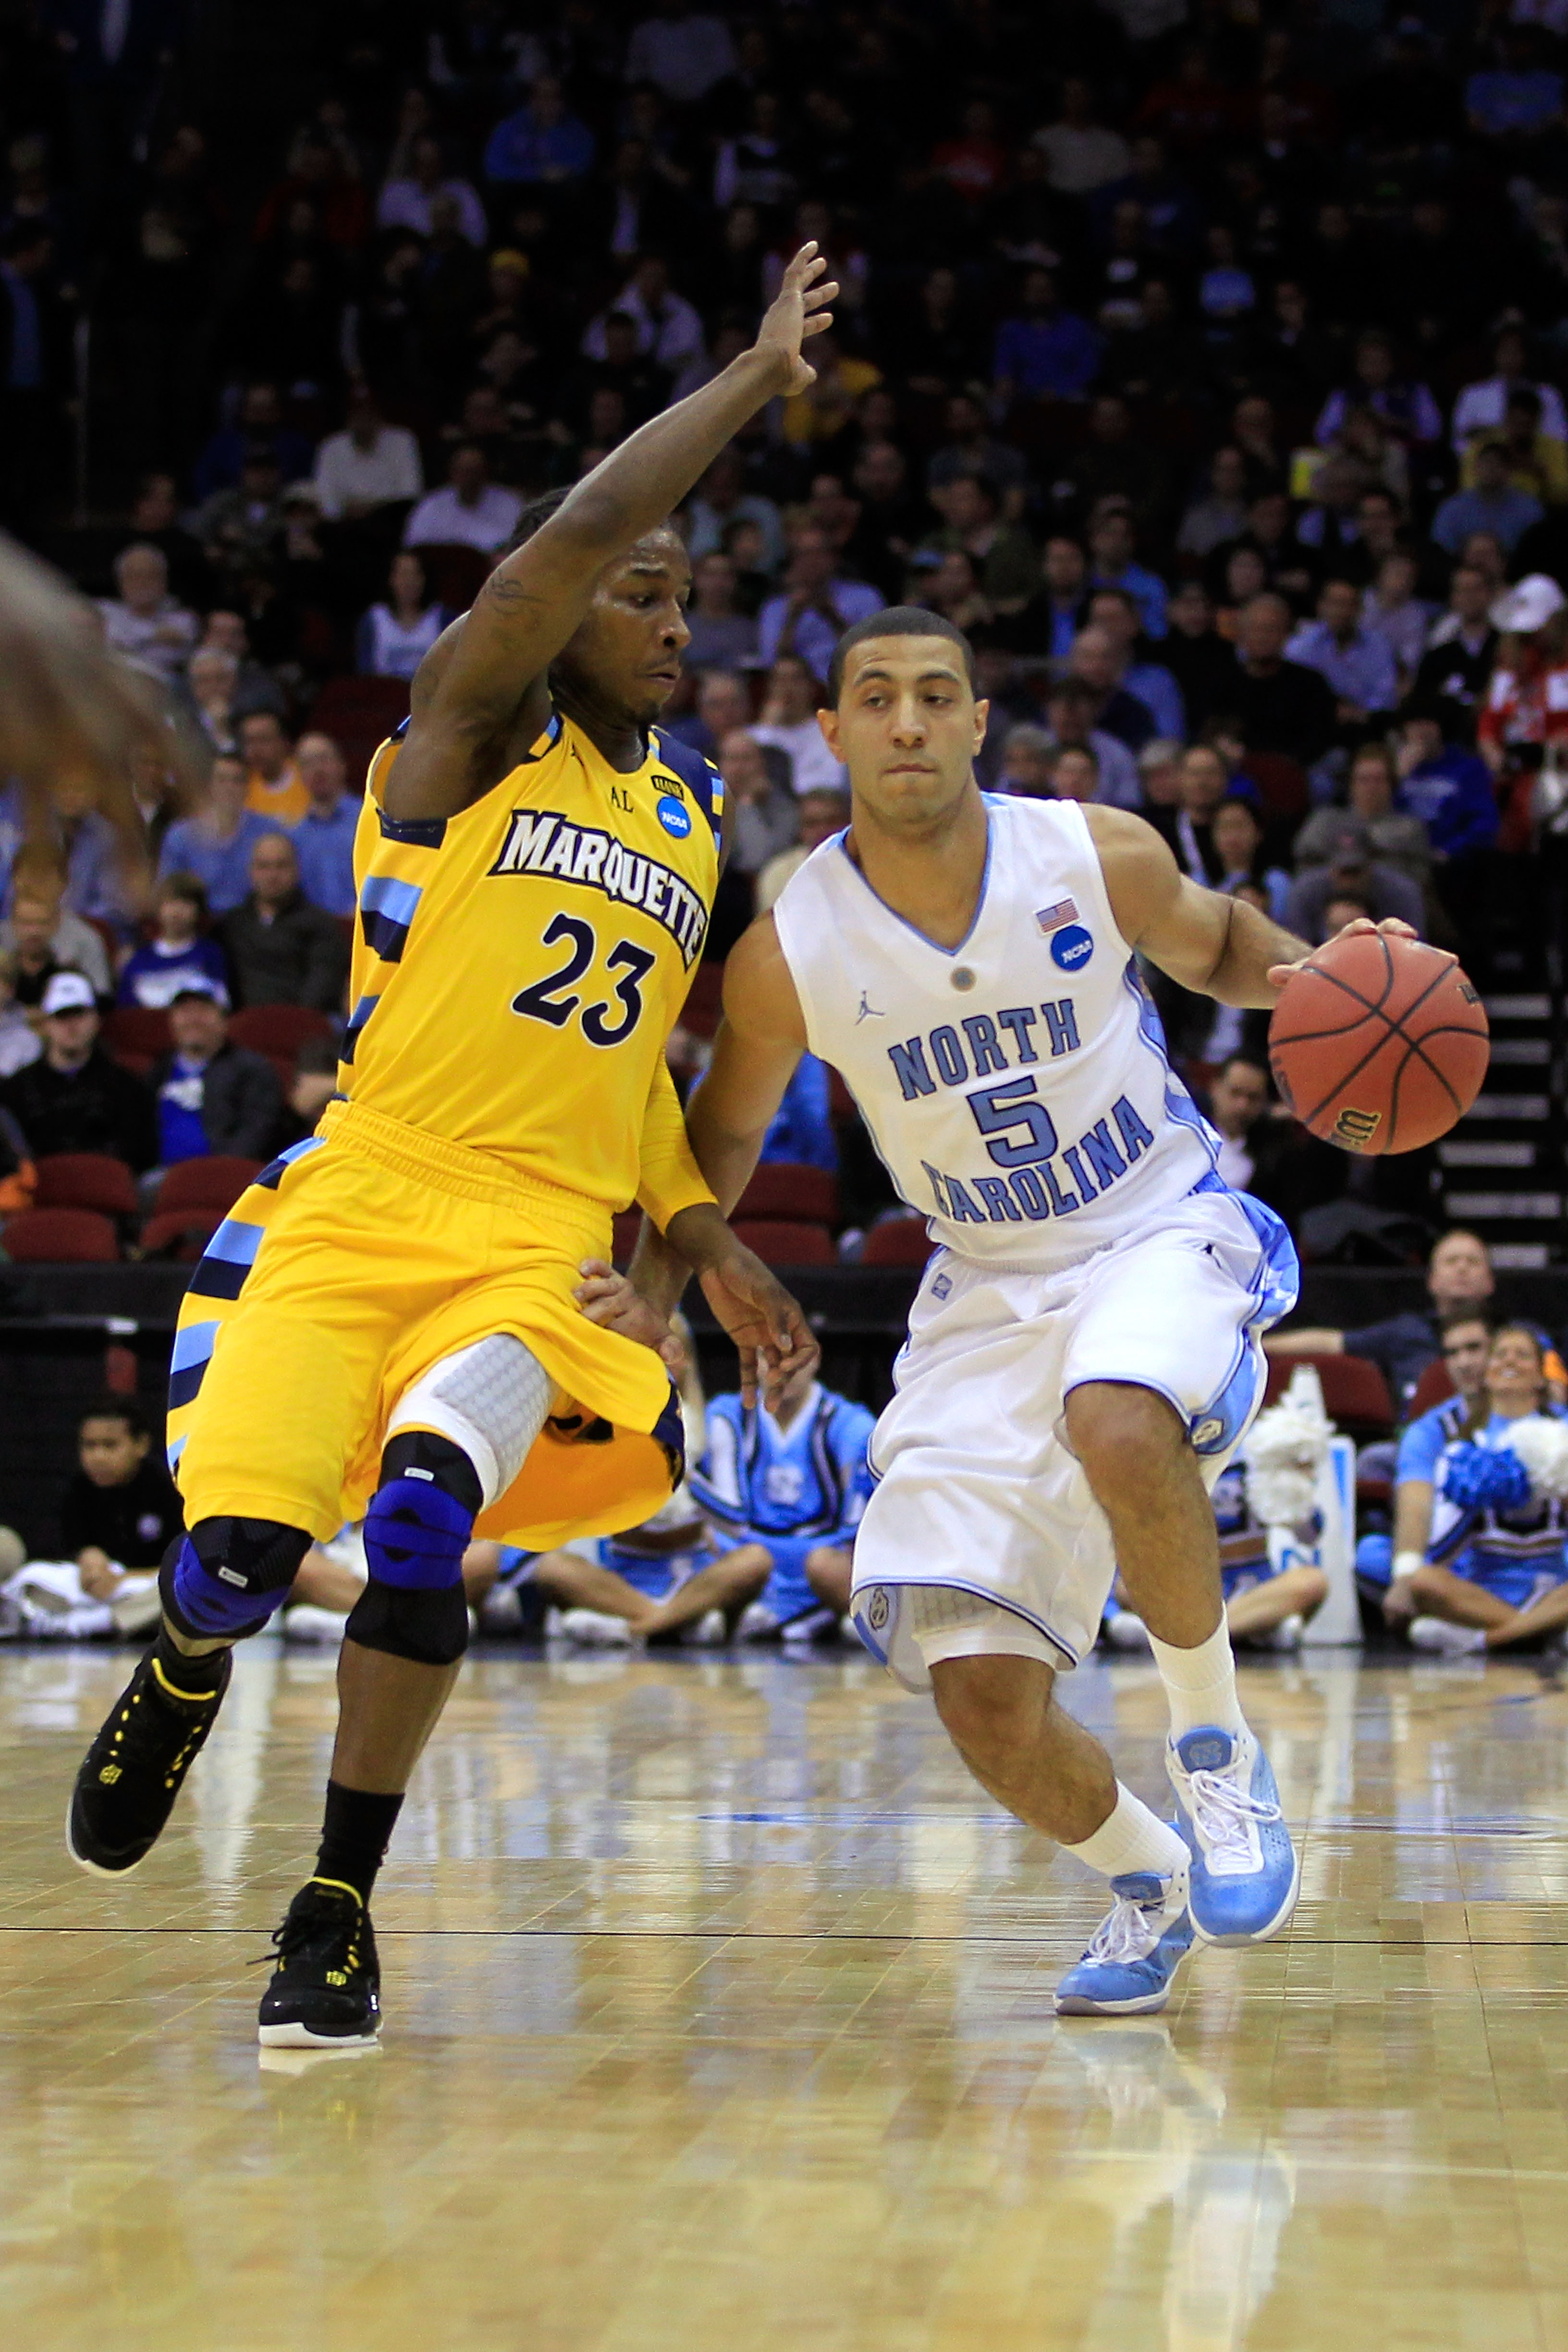 NEWARK, NJ - MARCH 25:  Kendall Marshall #5 of the North Carolina Tar Heels dribbles the ball against Dwight Buycks #23  of the Marquette Golden Eagles during the east regional semifinal of the 2011 NCAA Men's Basketball Tournament at the Prudential Cente